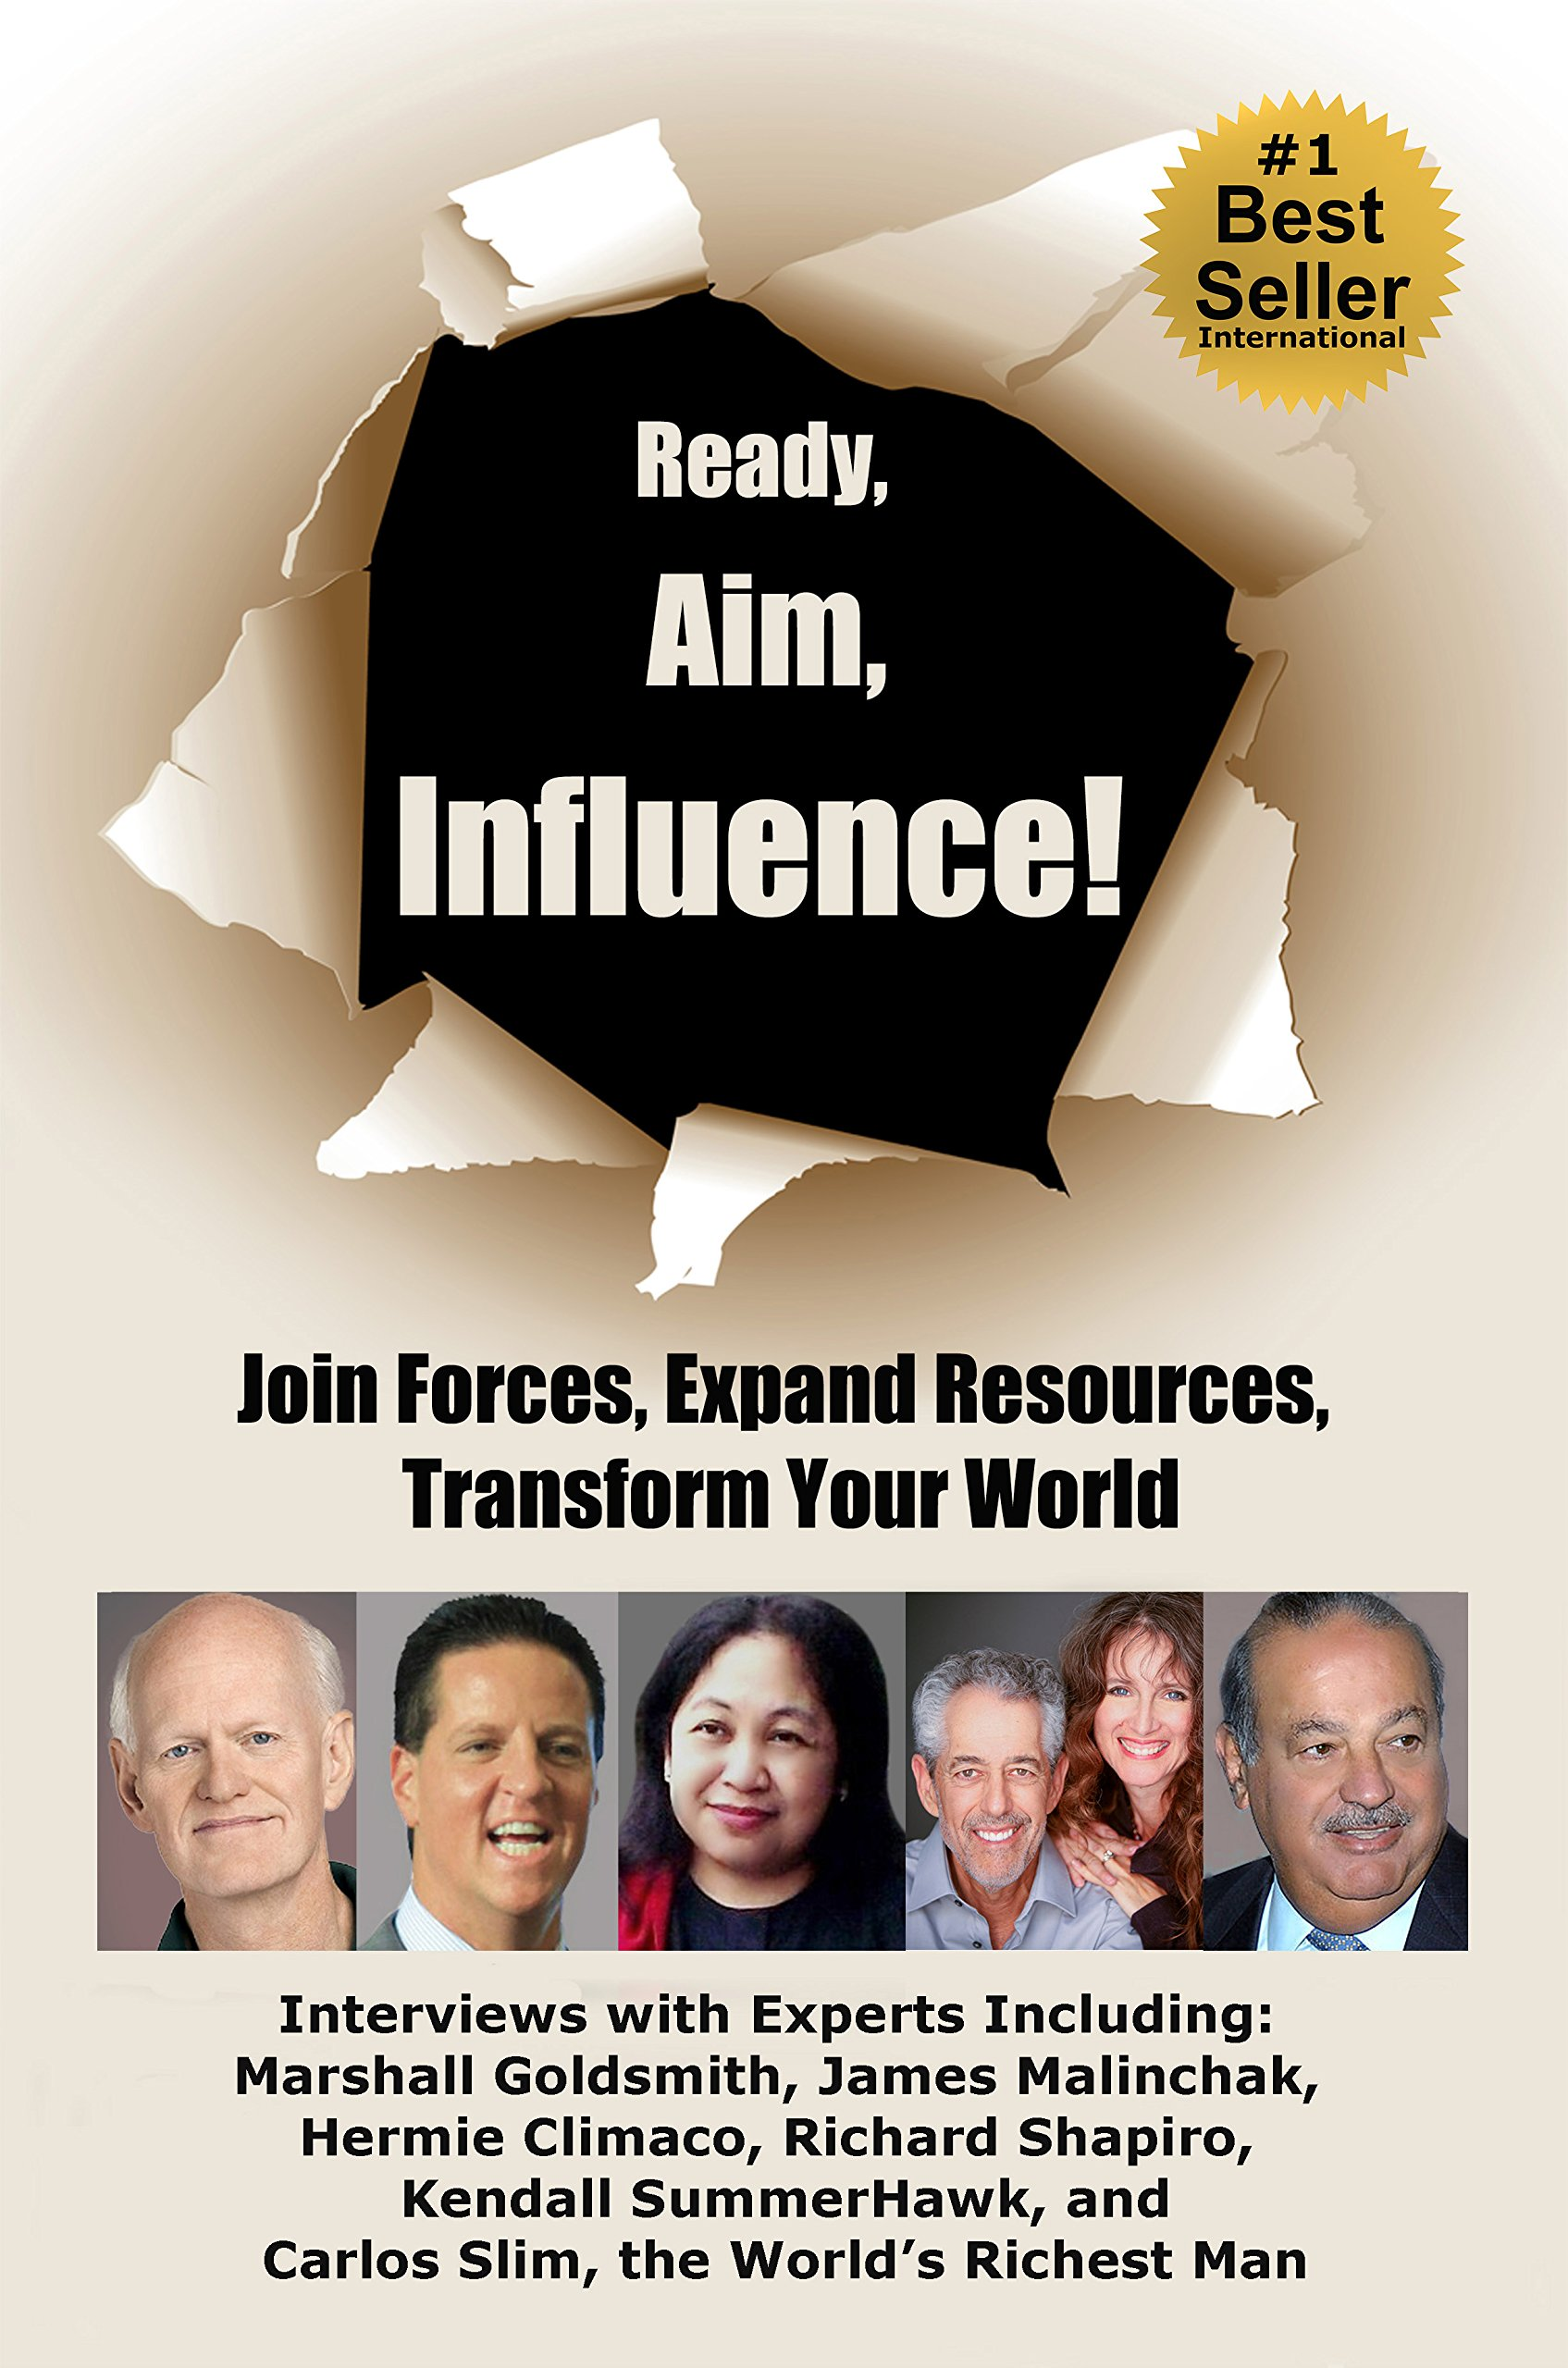 Ready, Aim, Influence! Join Forces, Expand Resources